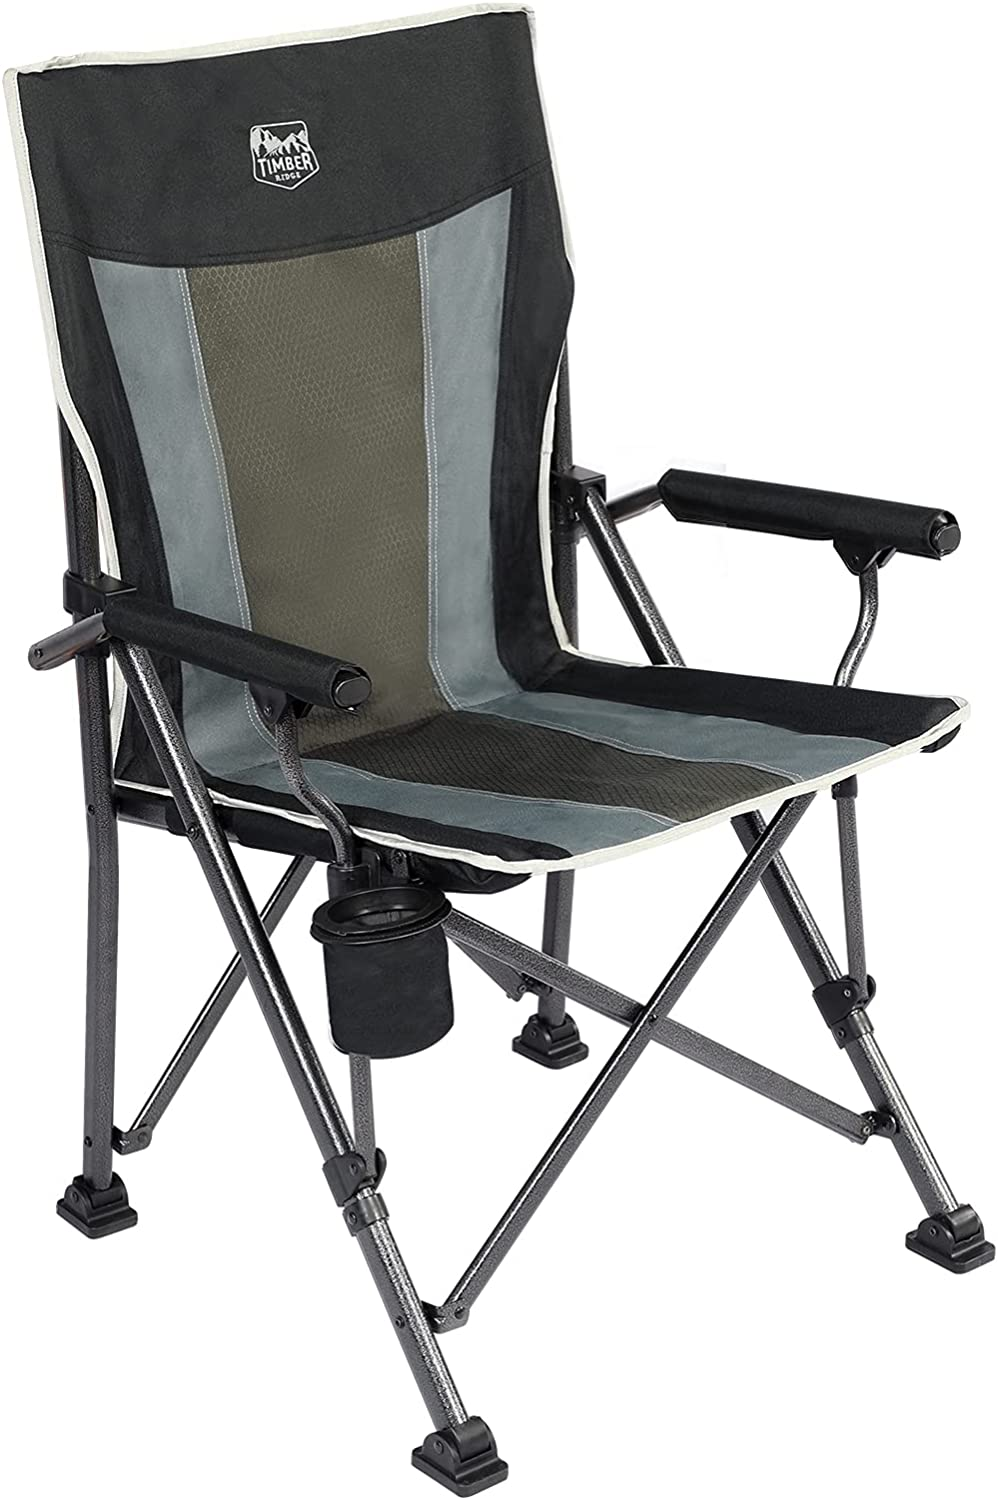 TIMBER RIDGE High Back Folding Camping Chair with Padded Hard Armrest and Cup Holder-for Outdoor, Camp, Fishing, Hiking, Lawn, Including Carry Bag (Black)